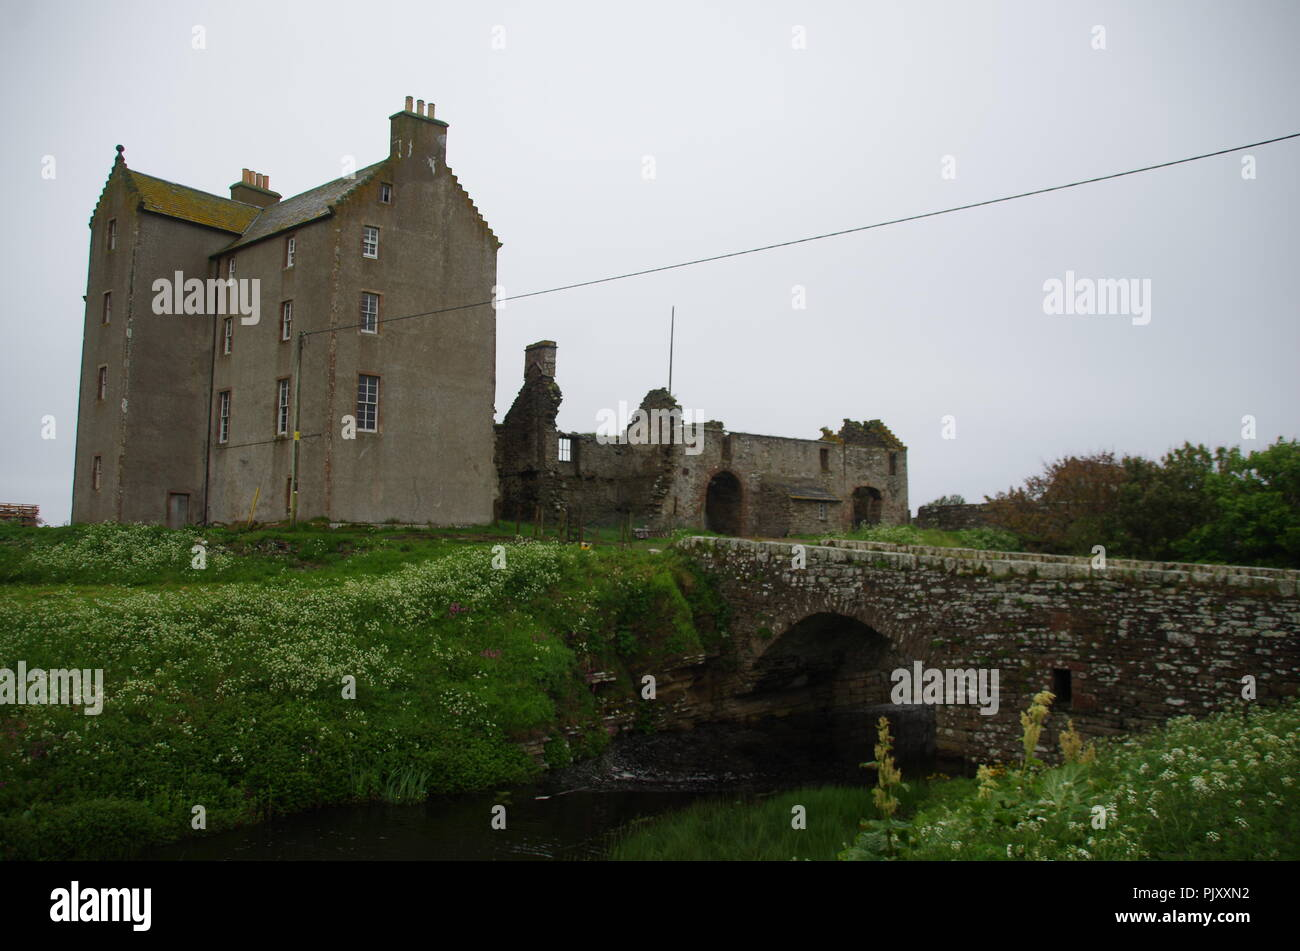 Freswick Castle. Freswick Bay. Freswick. John o' groats (Duncansby head) to lands end. Cornwall. End to end trail. Caithness. Scotland. UK - Stock Image